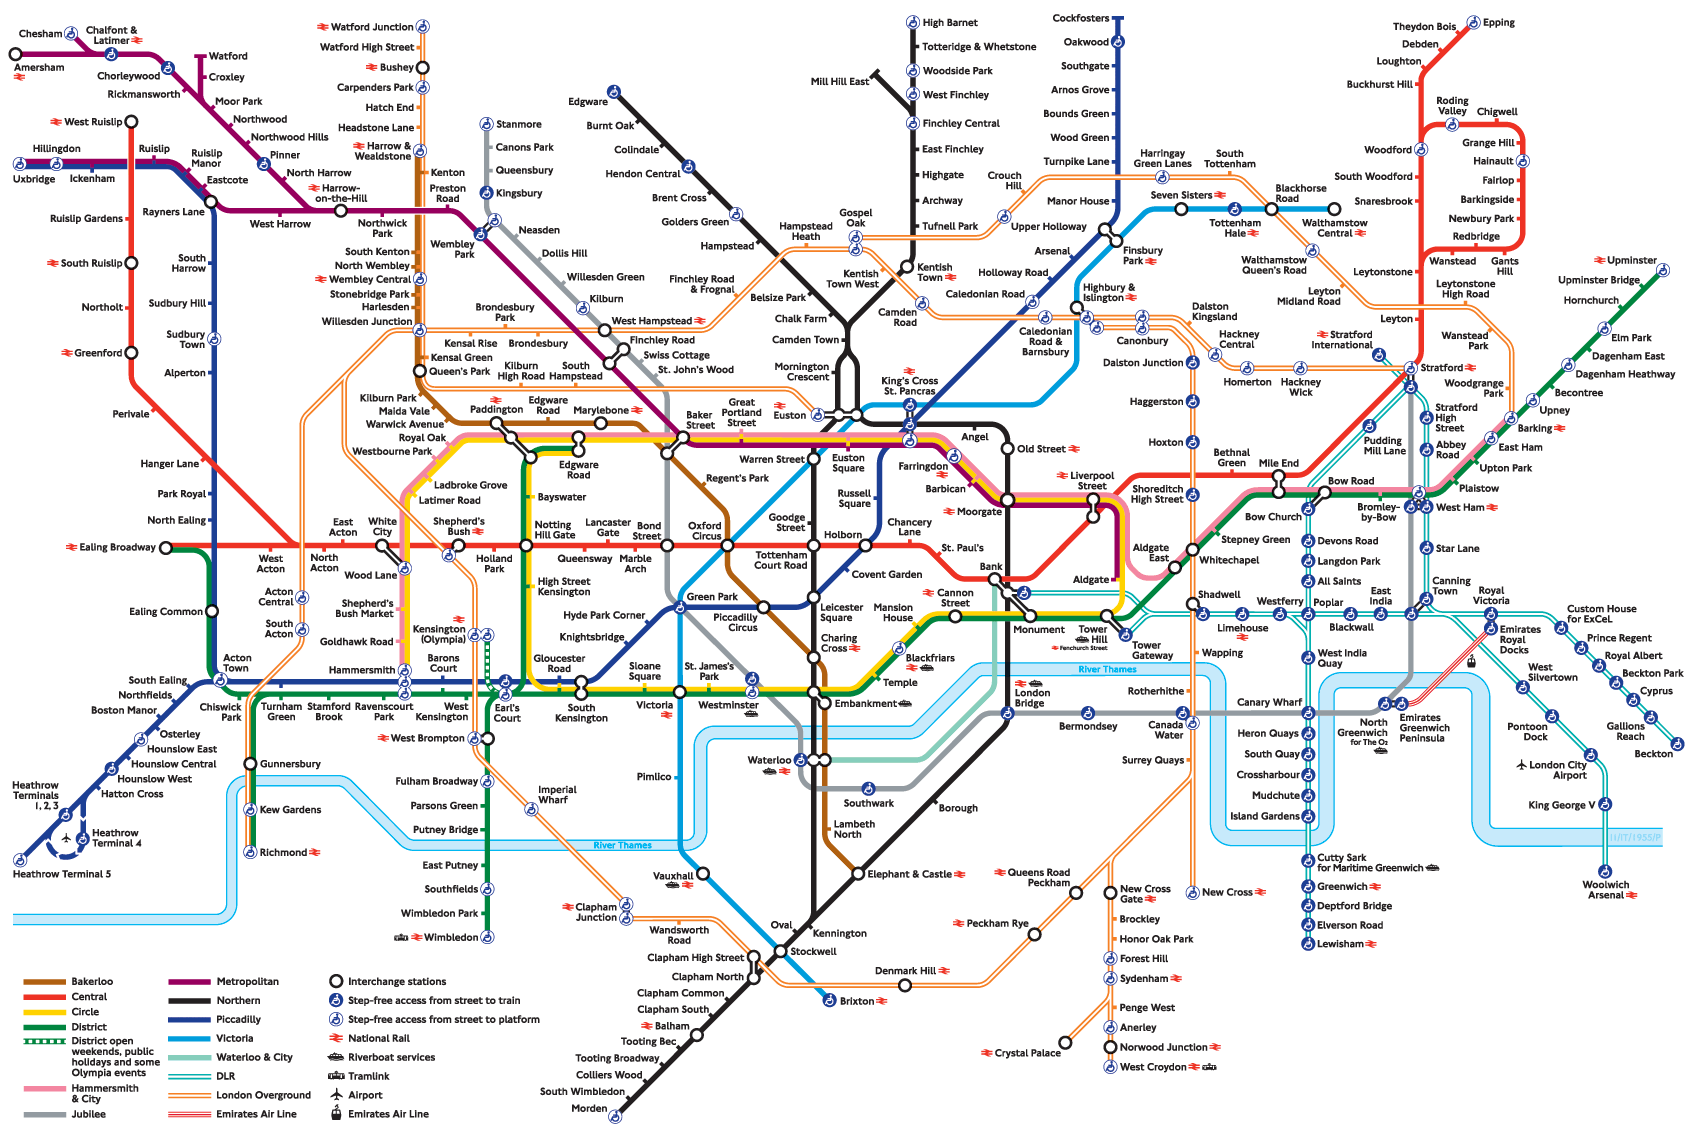 http://www.emmanently.com/wp-content/uploads/2015/03/tubemap-2012-12.png